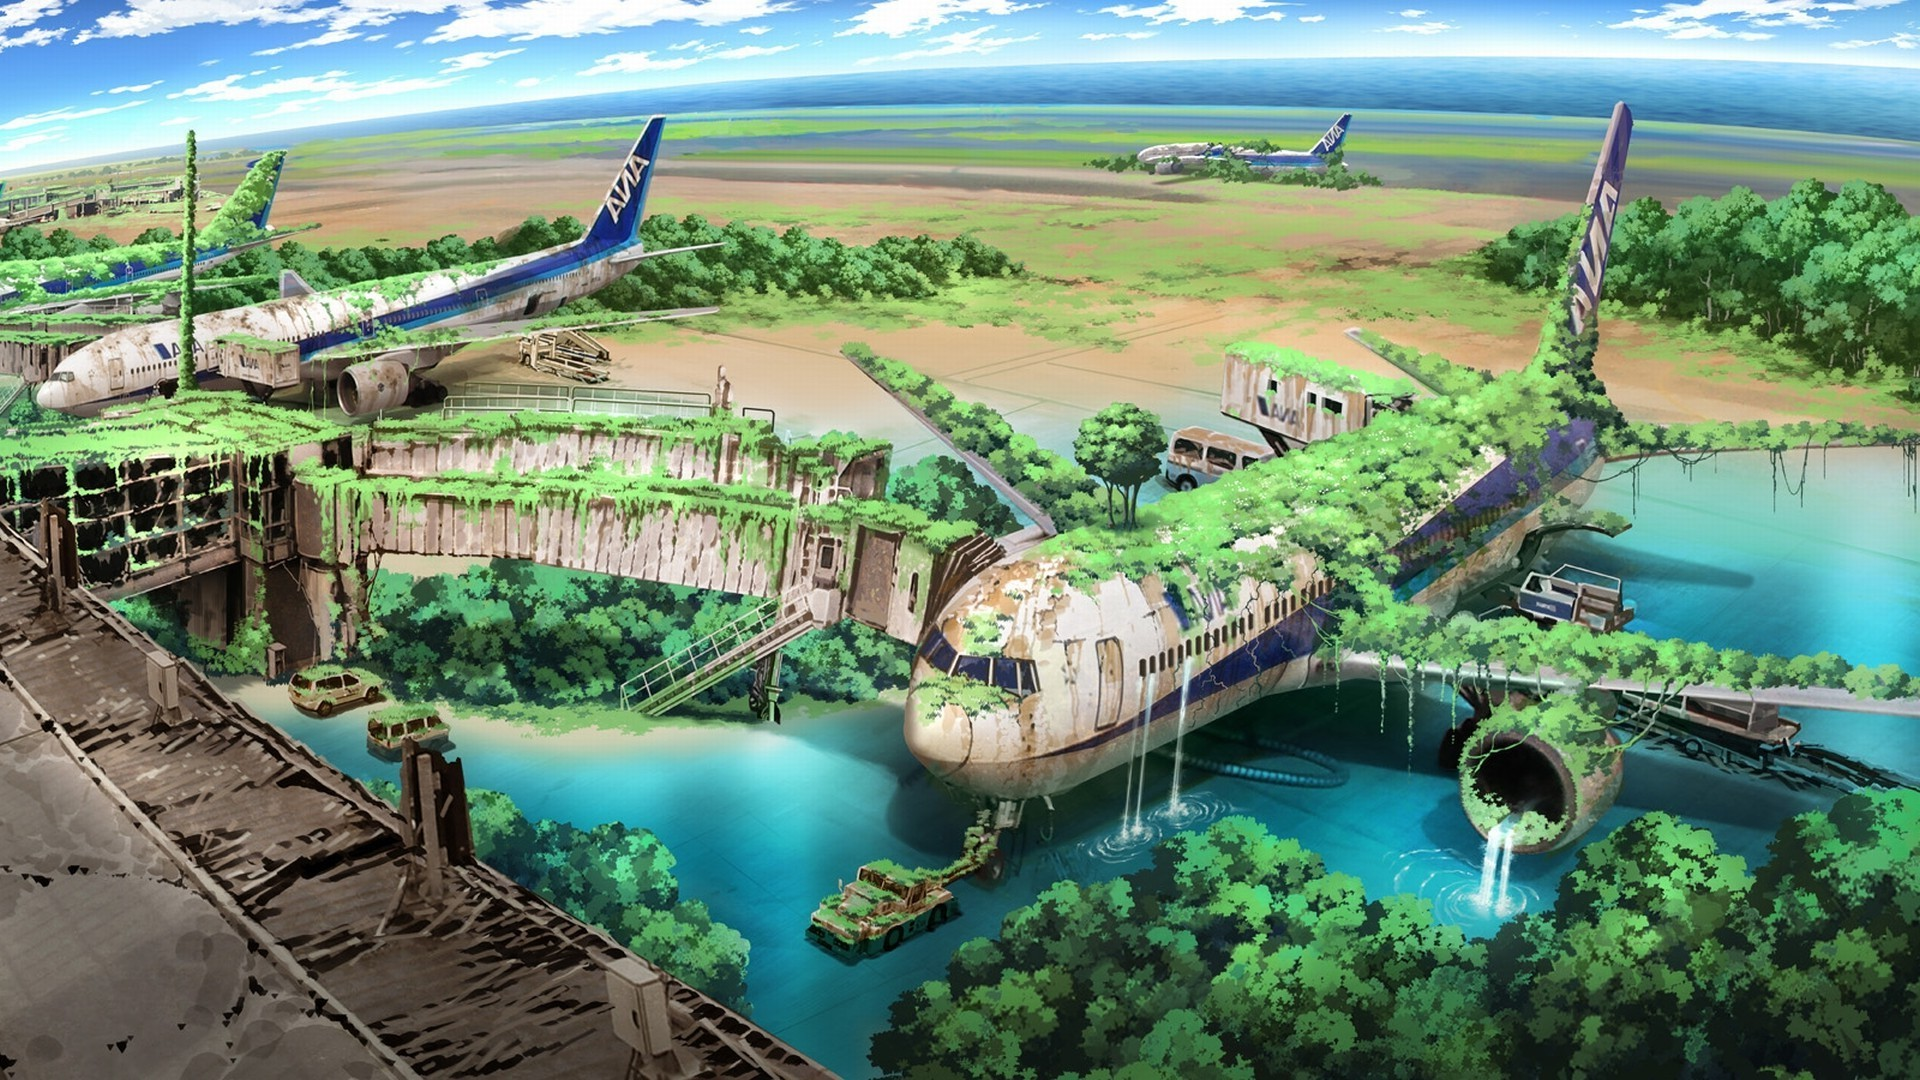 1920x1080 apocalyptic, Airplane, Nature, Anime, Aircraft, Drawing Wallpapers HD /  Desktop and Mobile Backgrounds